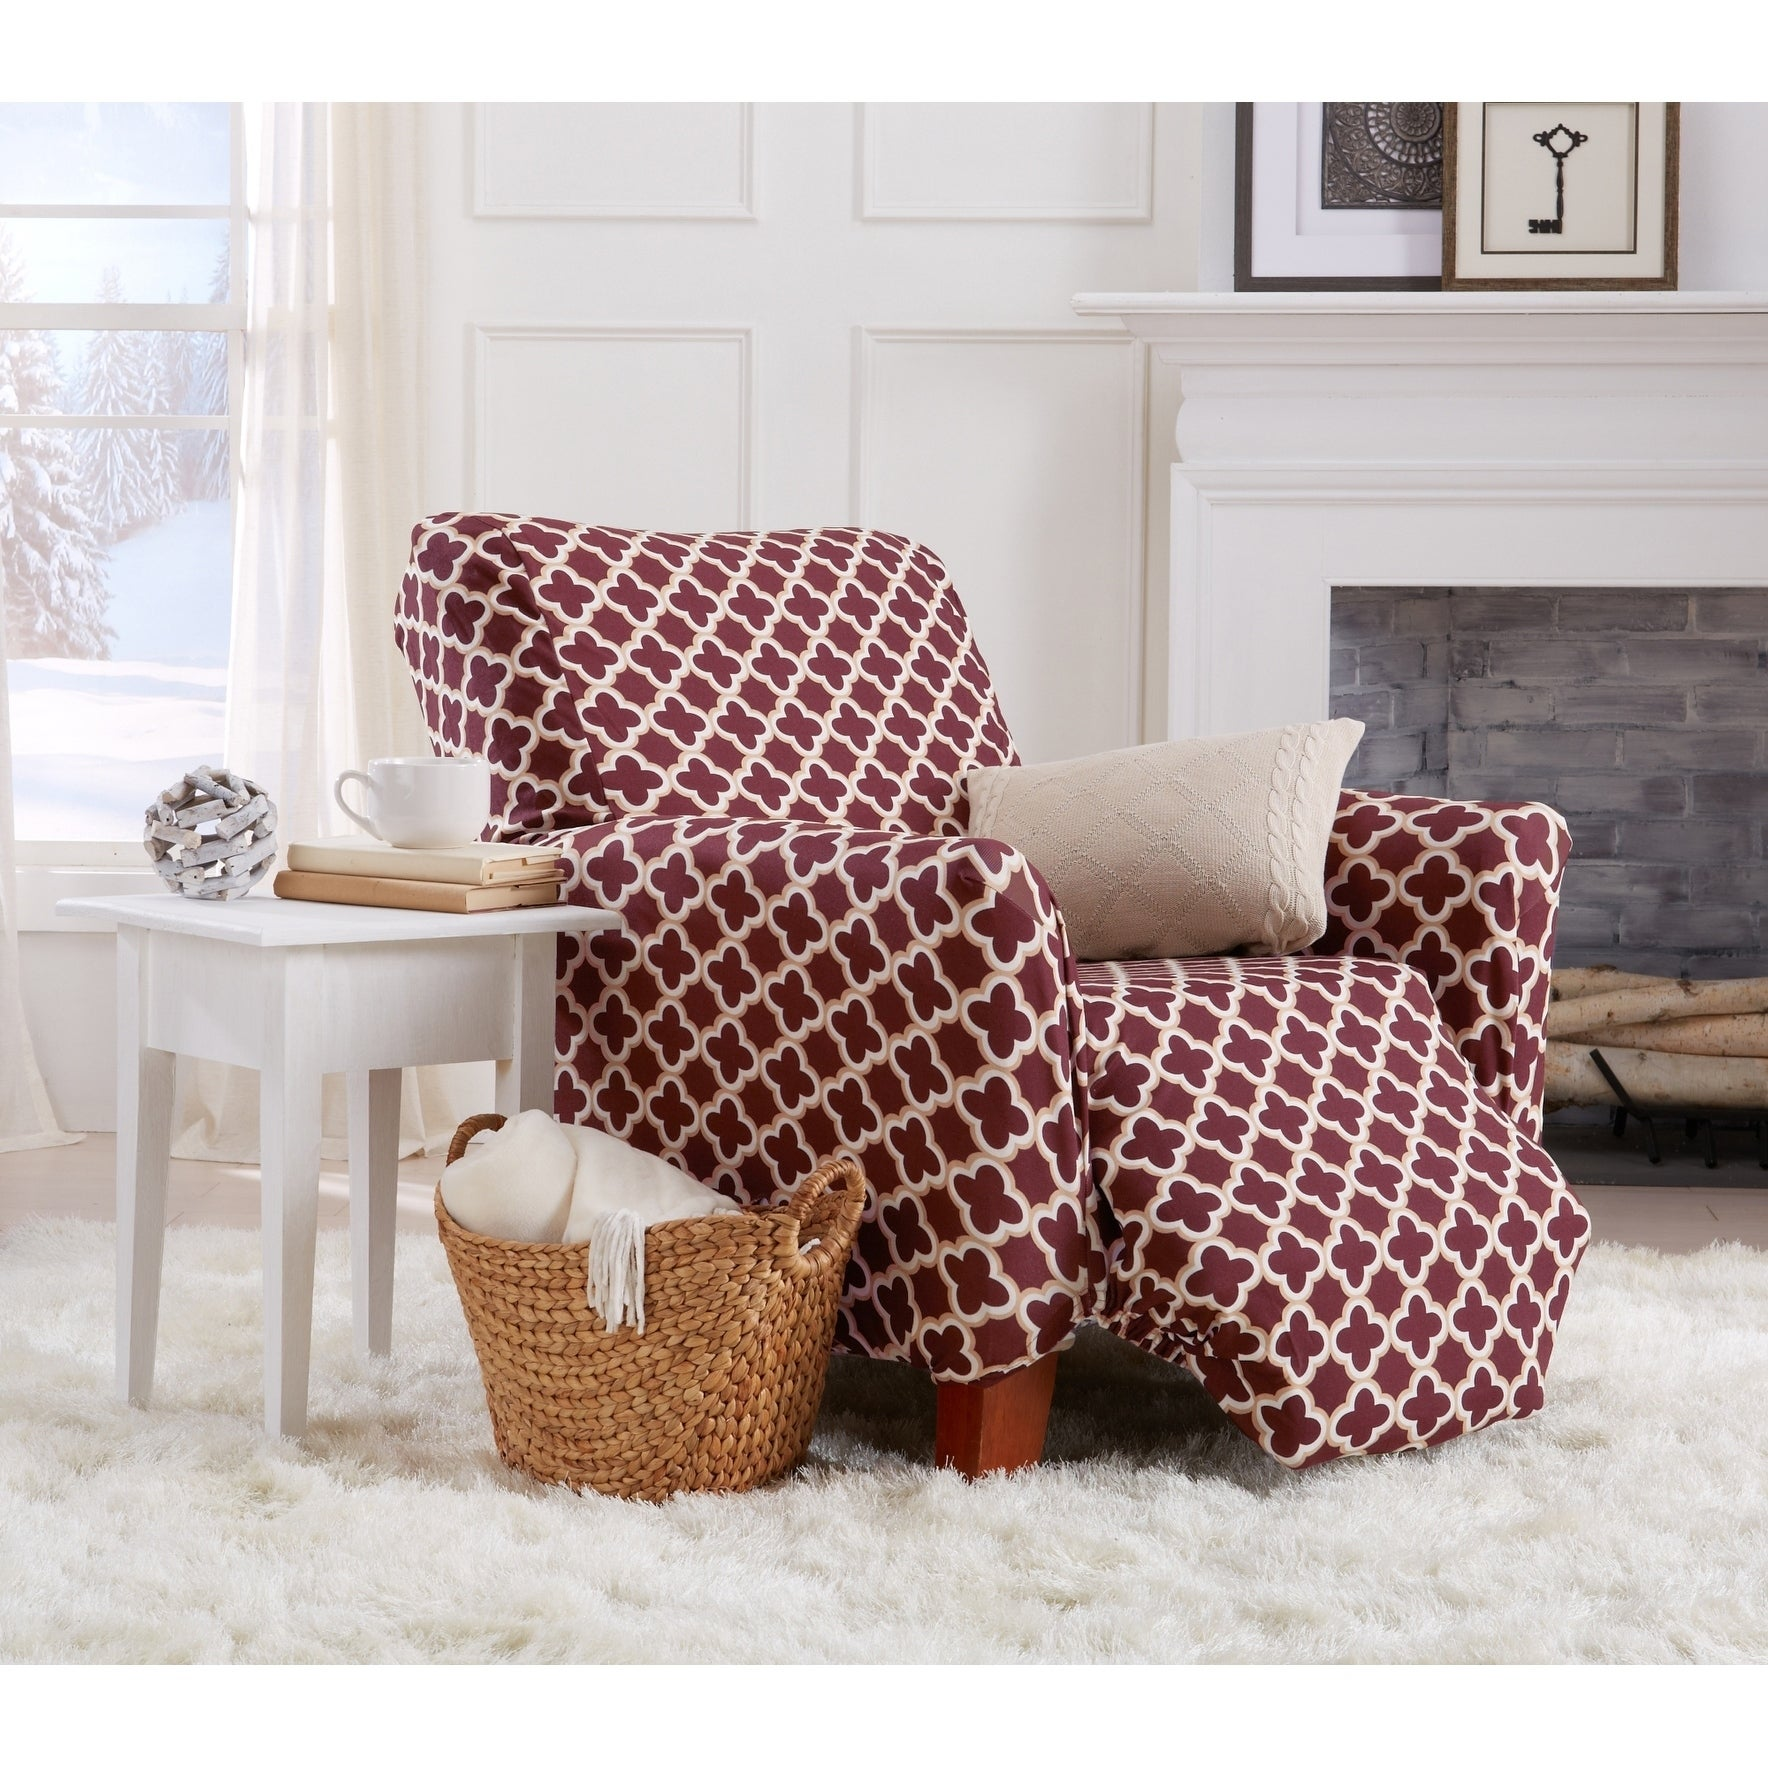 Recliner Slipcover Pattern Awesome Inspiration Design